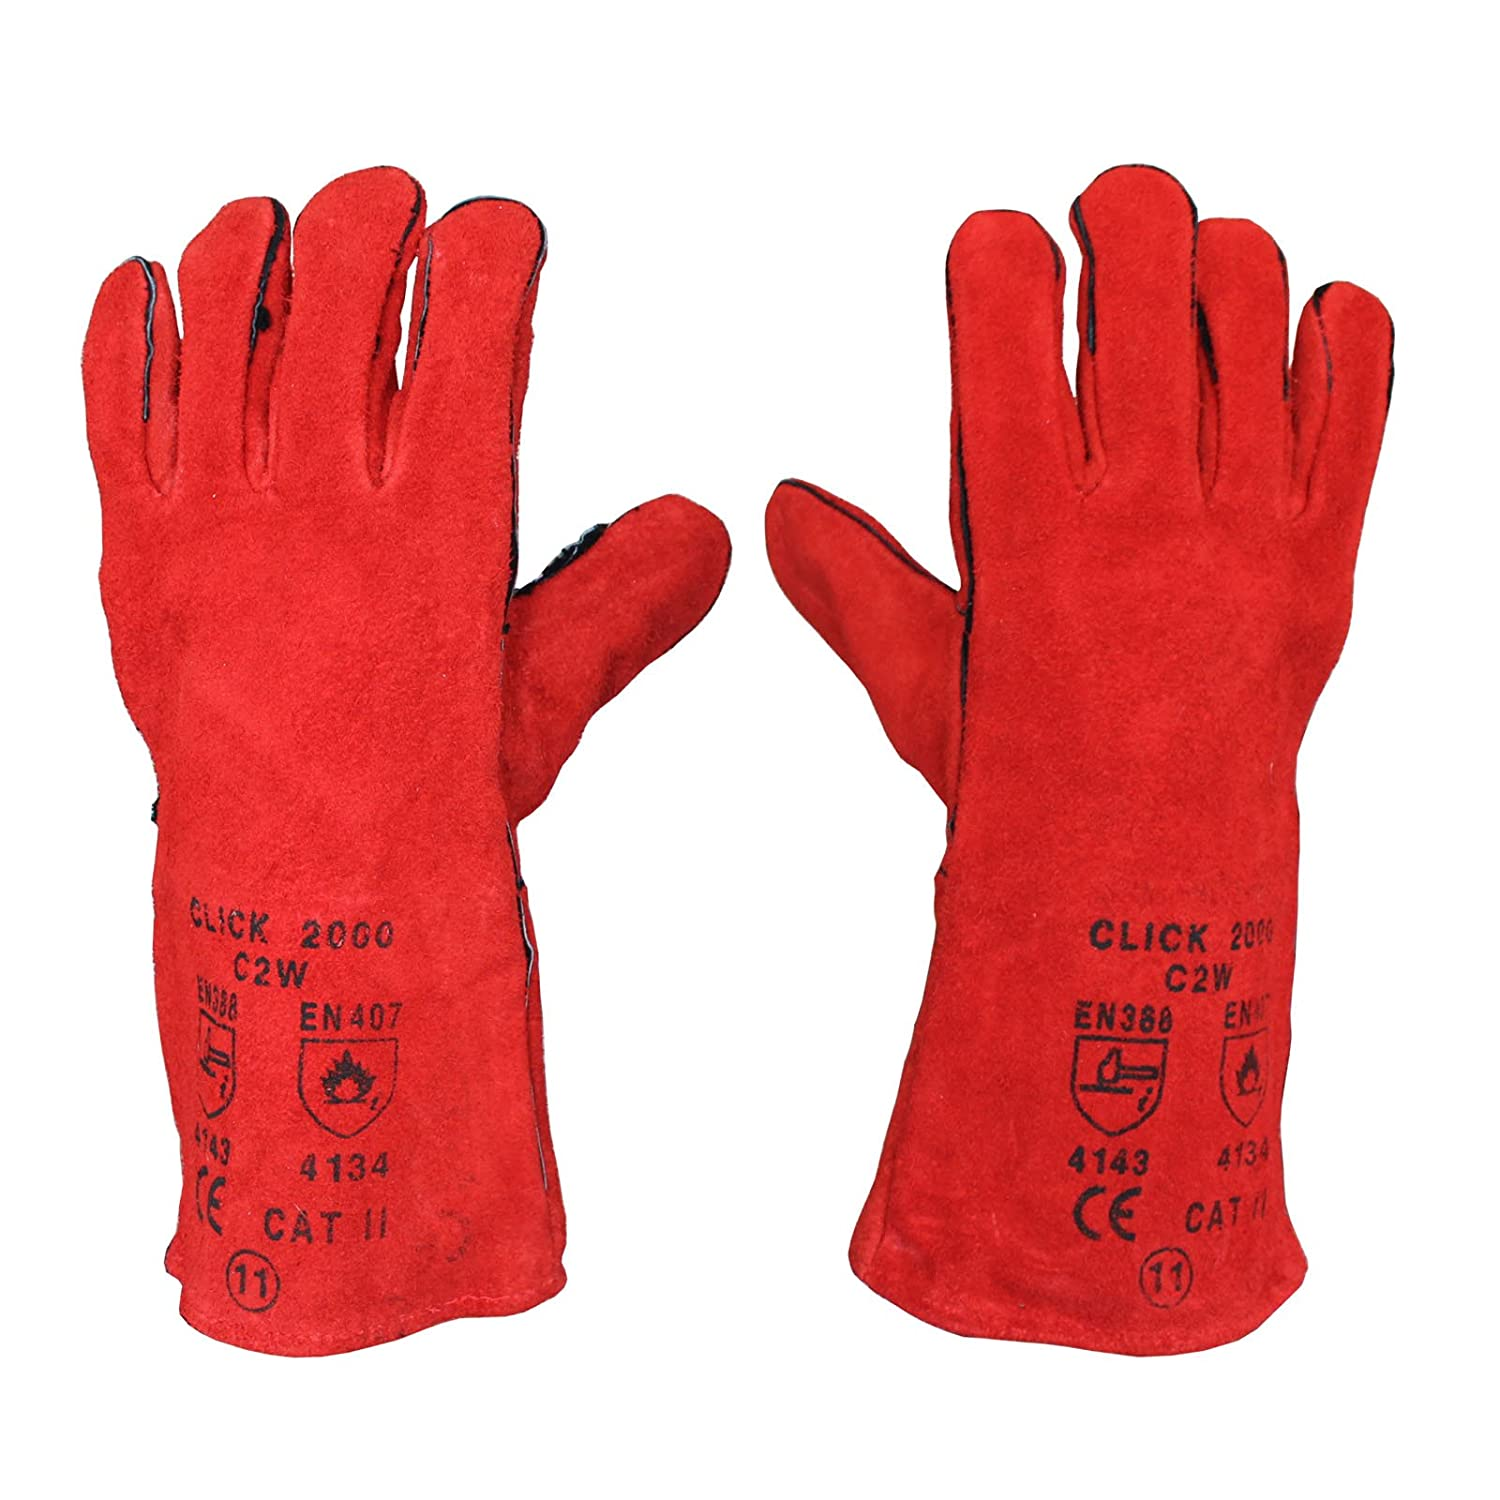 Welding Gloves Canada - Best Gloves 2018